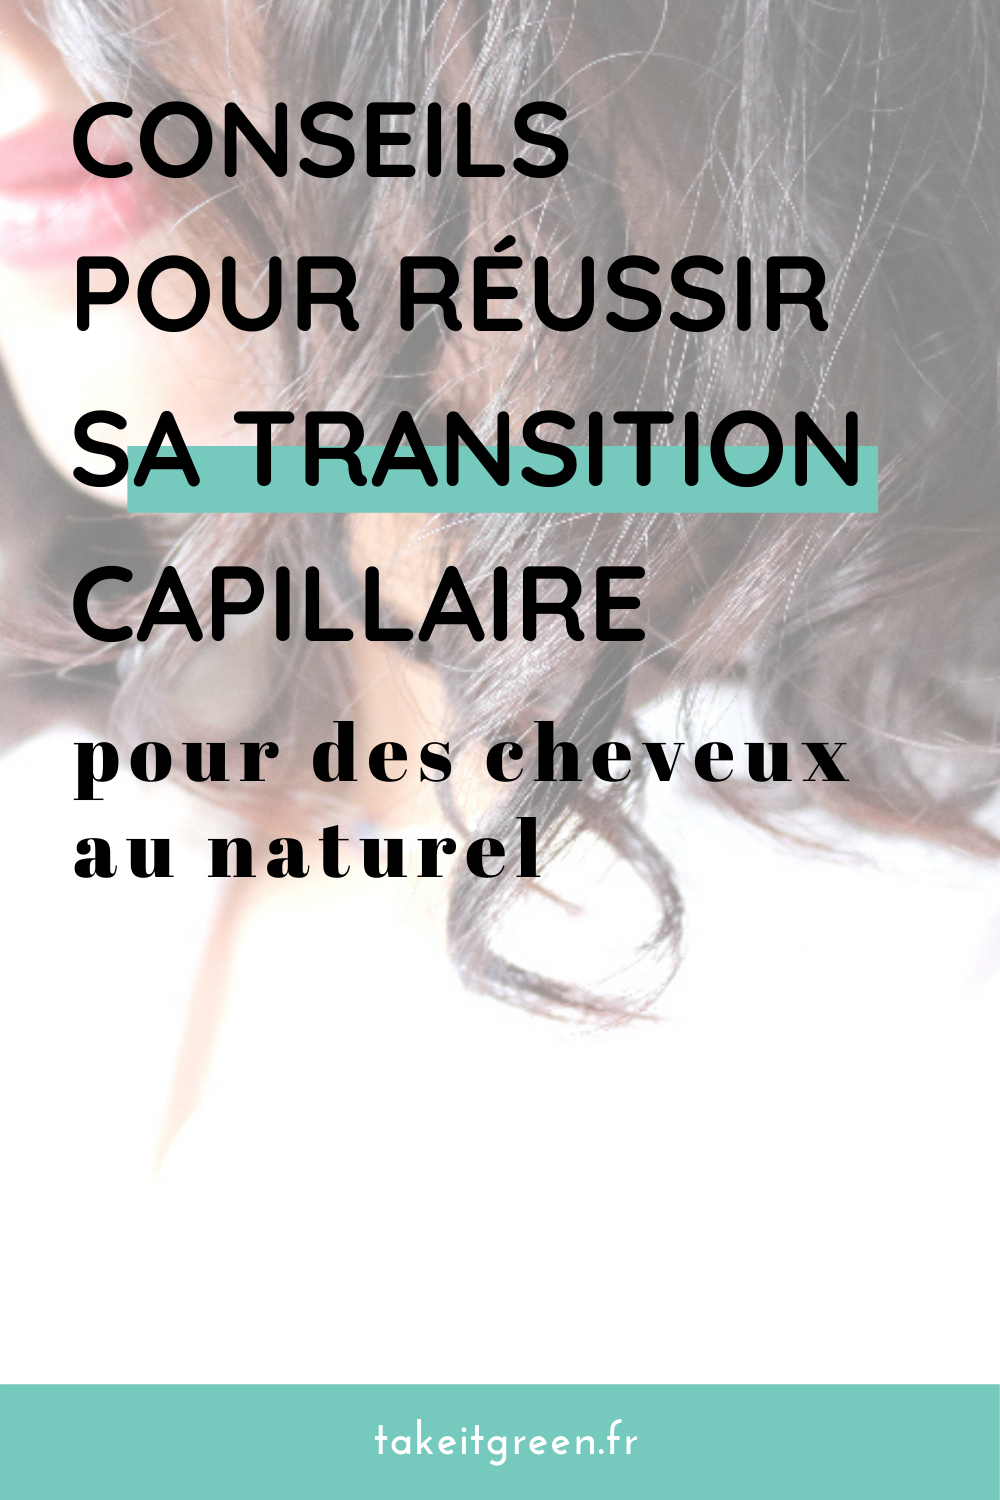 Transition capillaire au naturel